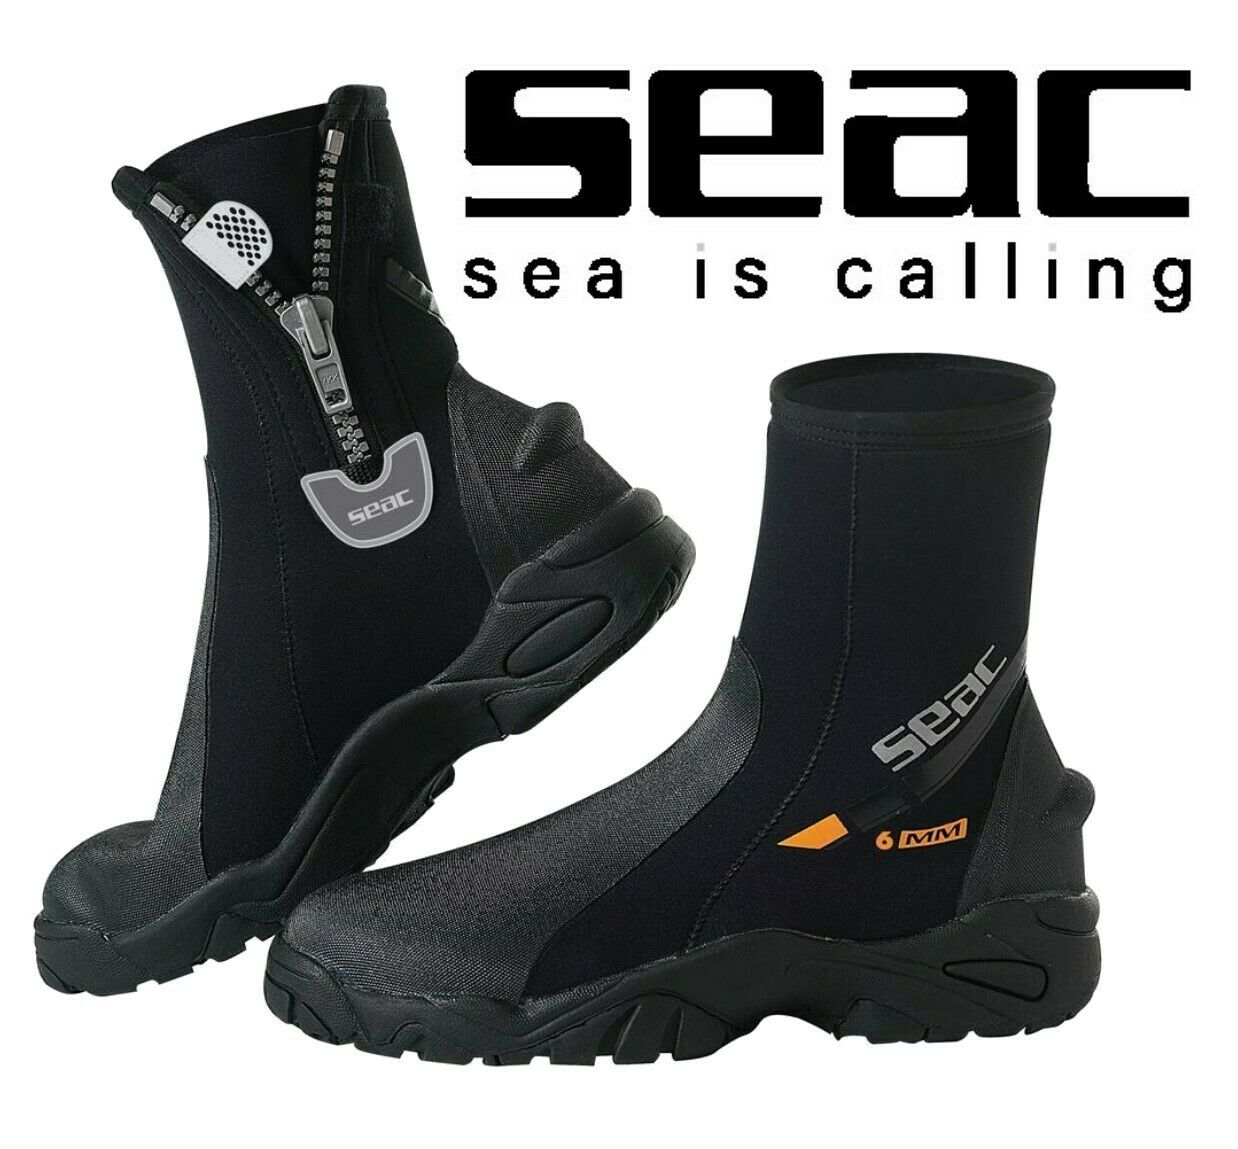 SEAC PRO Heavy Duty subacquei Watersport Stivaletti in neoprene con cerniera suola HD